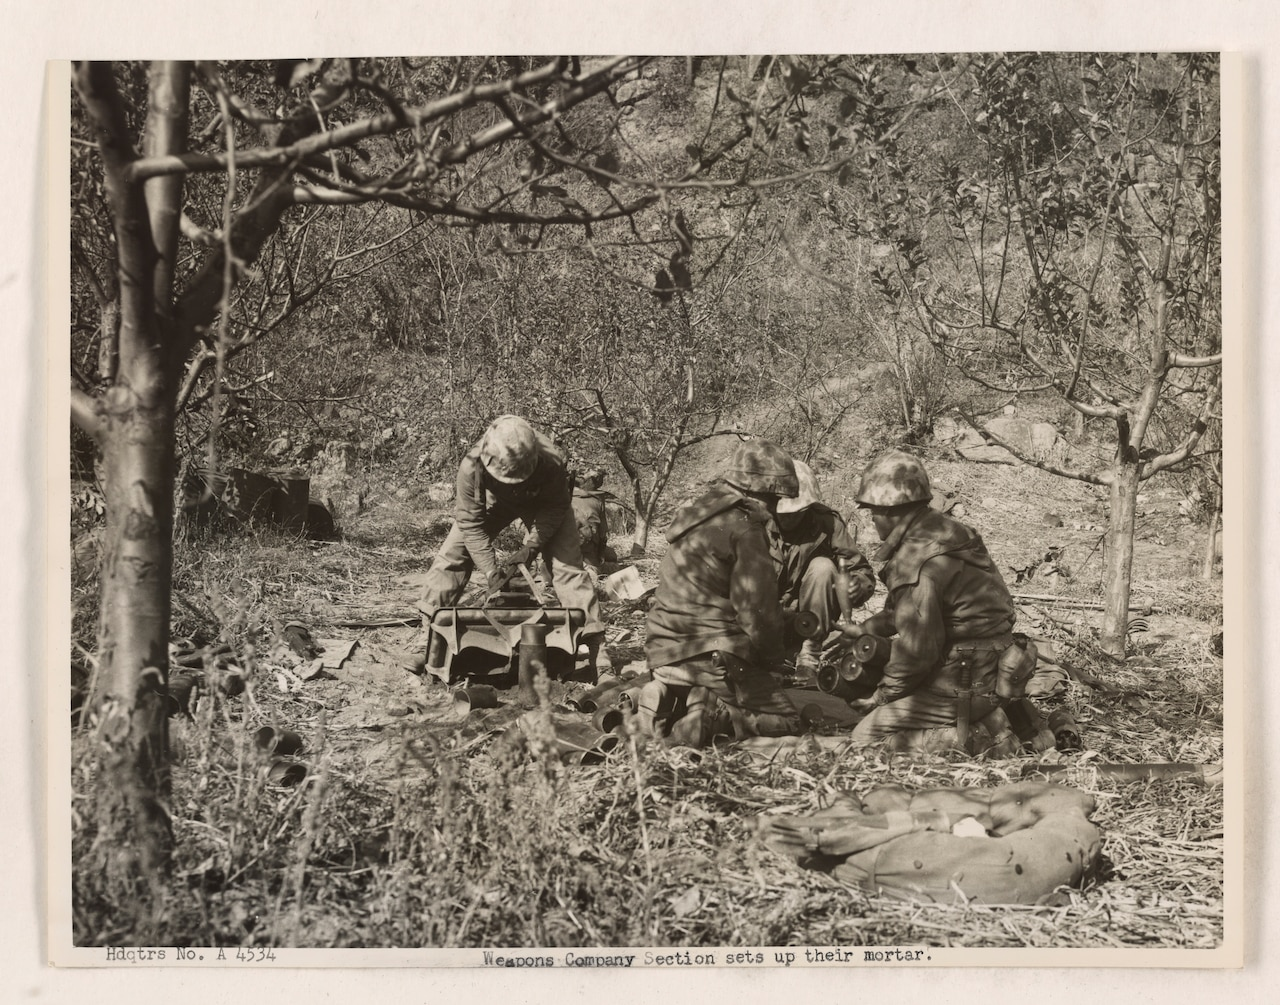 Four Marines work to put together a large gun while surrounded by brush and leafless trees.